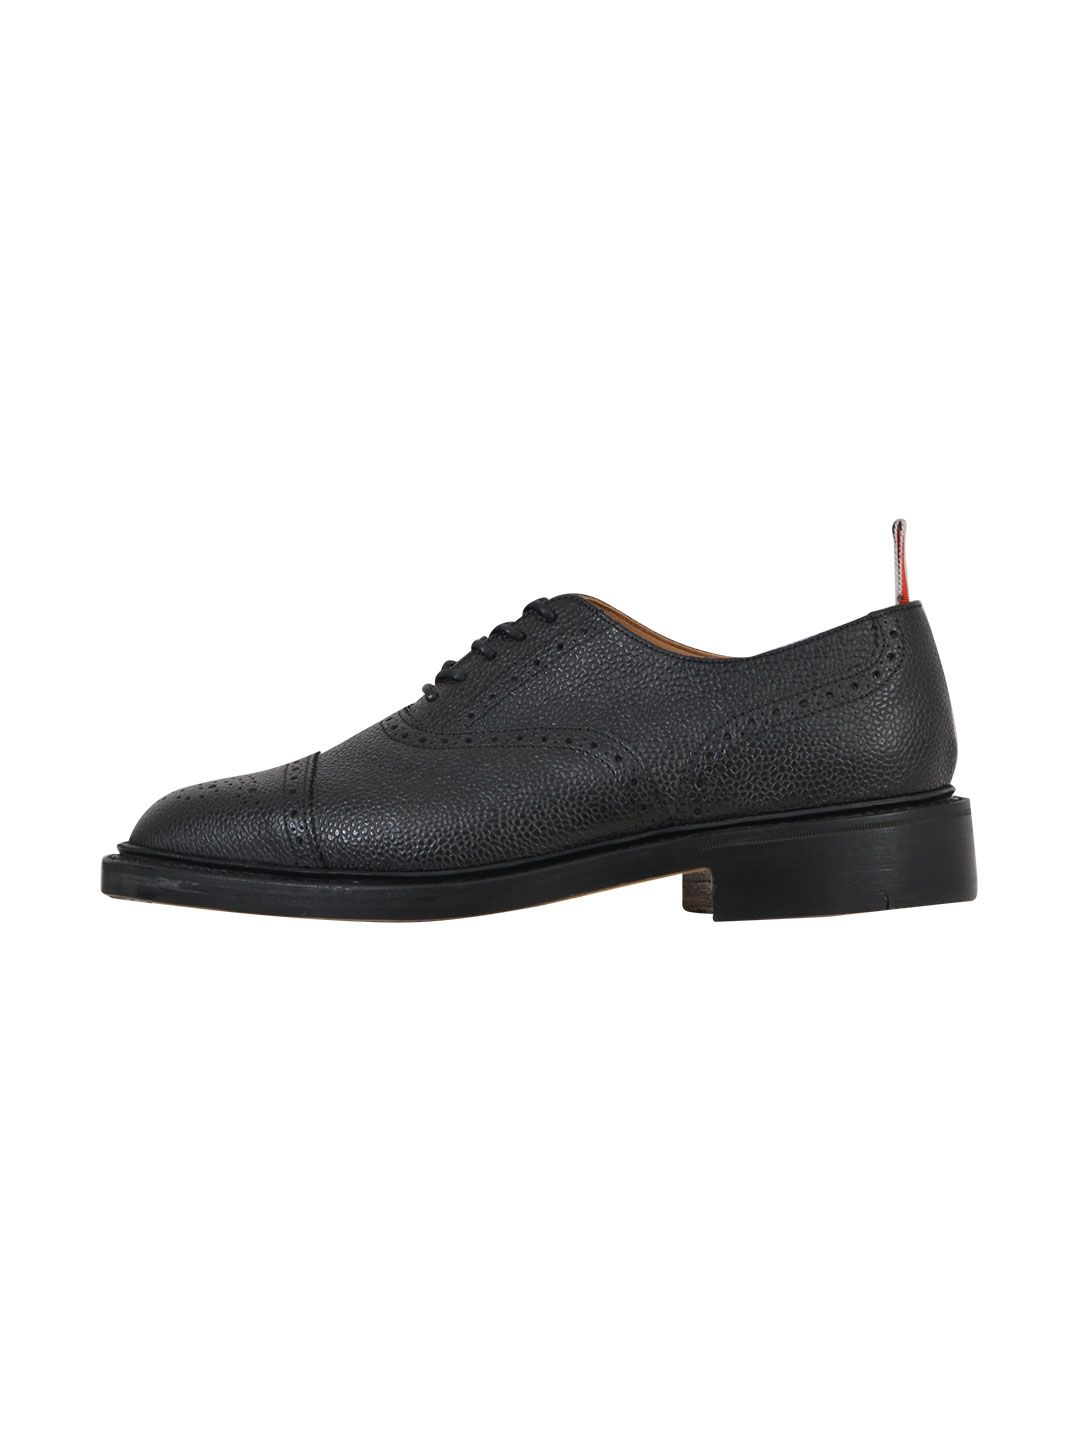 Thom Browne Black Brogue Shoe